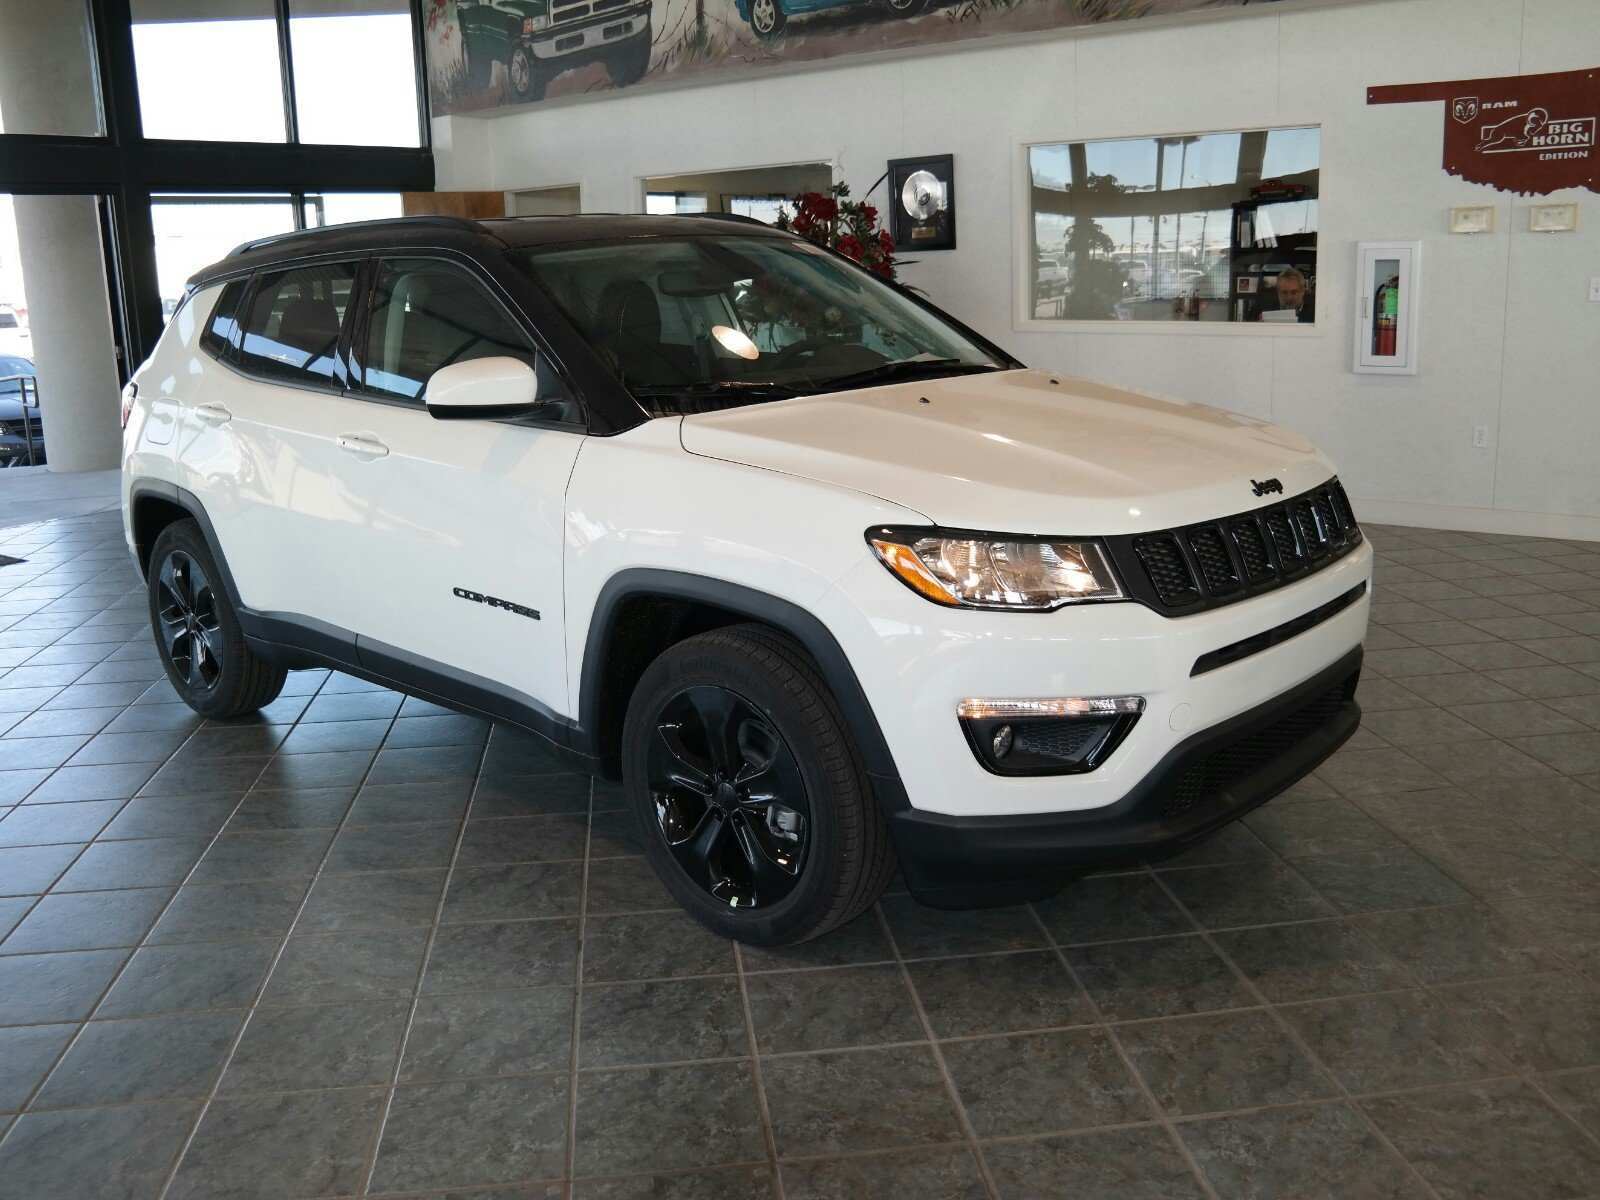 59 The Best 2019 Jeep Compass Performance